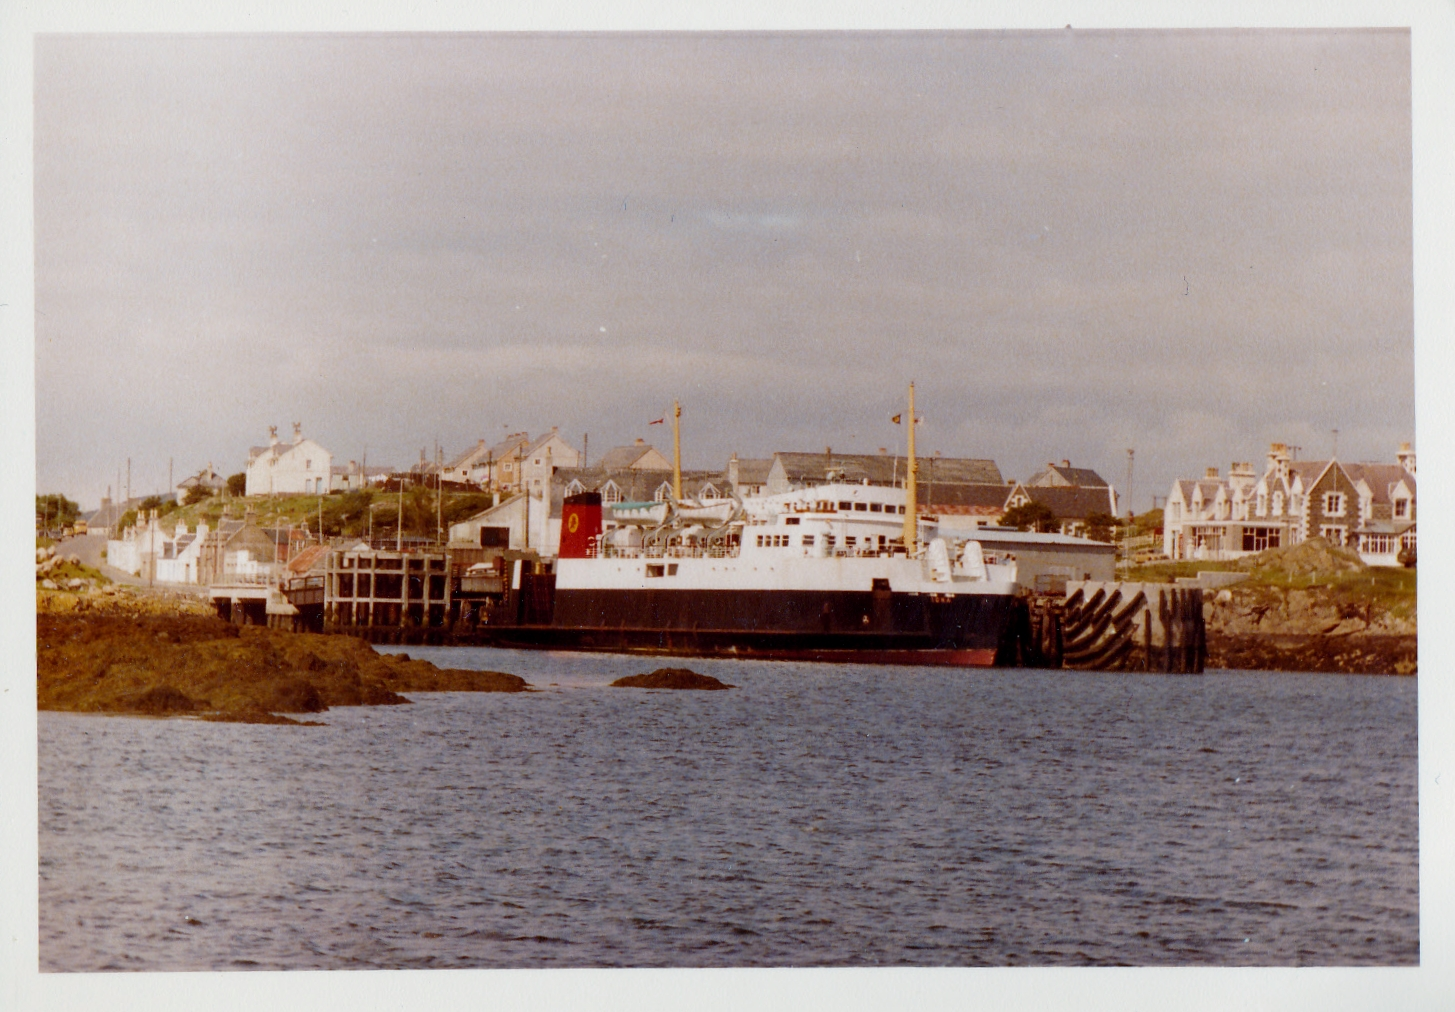 Iona at Lochboisdale (Jim Aikman Smith)